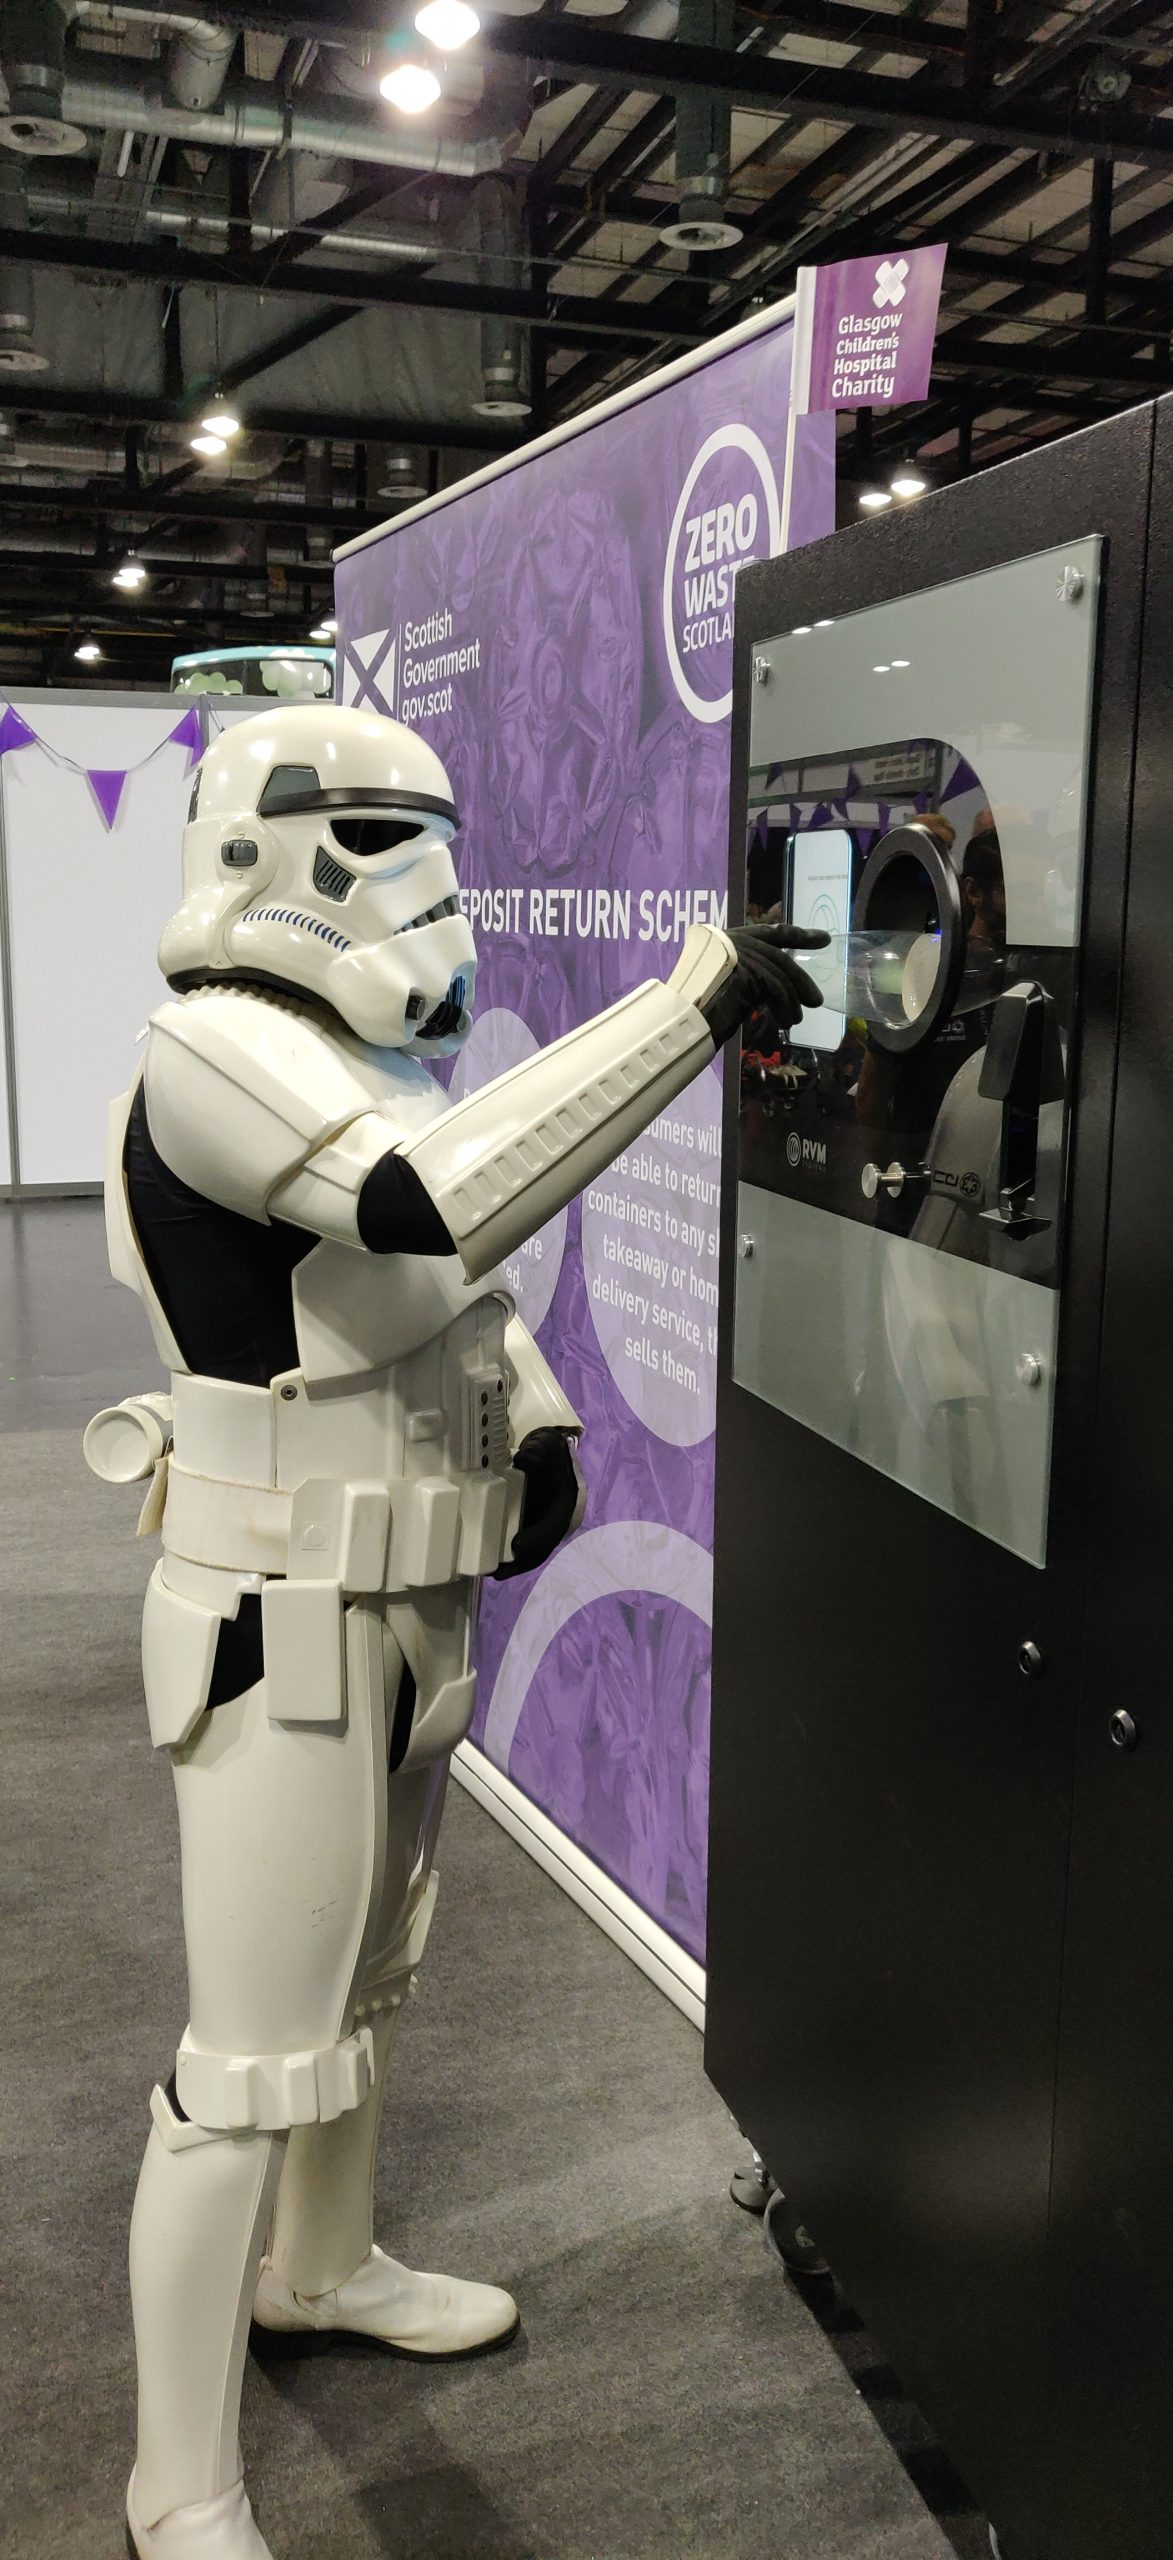 StormTrooper using the Reverse Vending at Zero Waste Scotland Stand